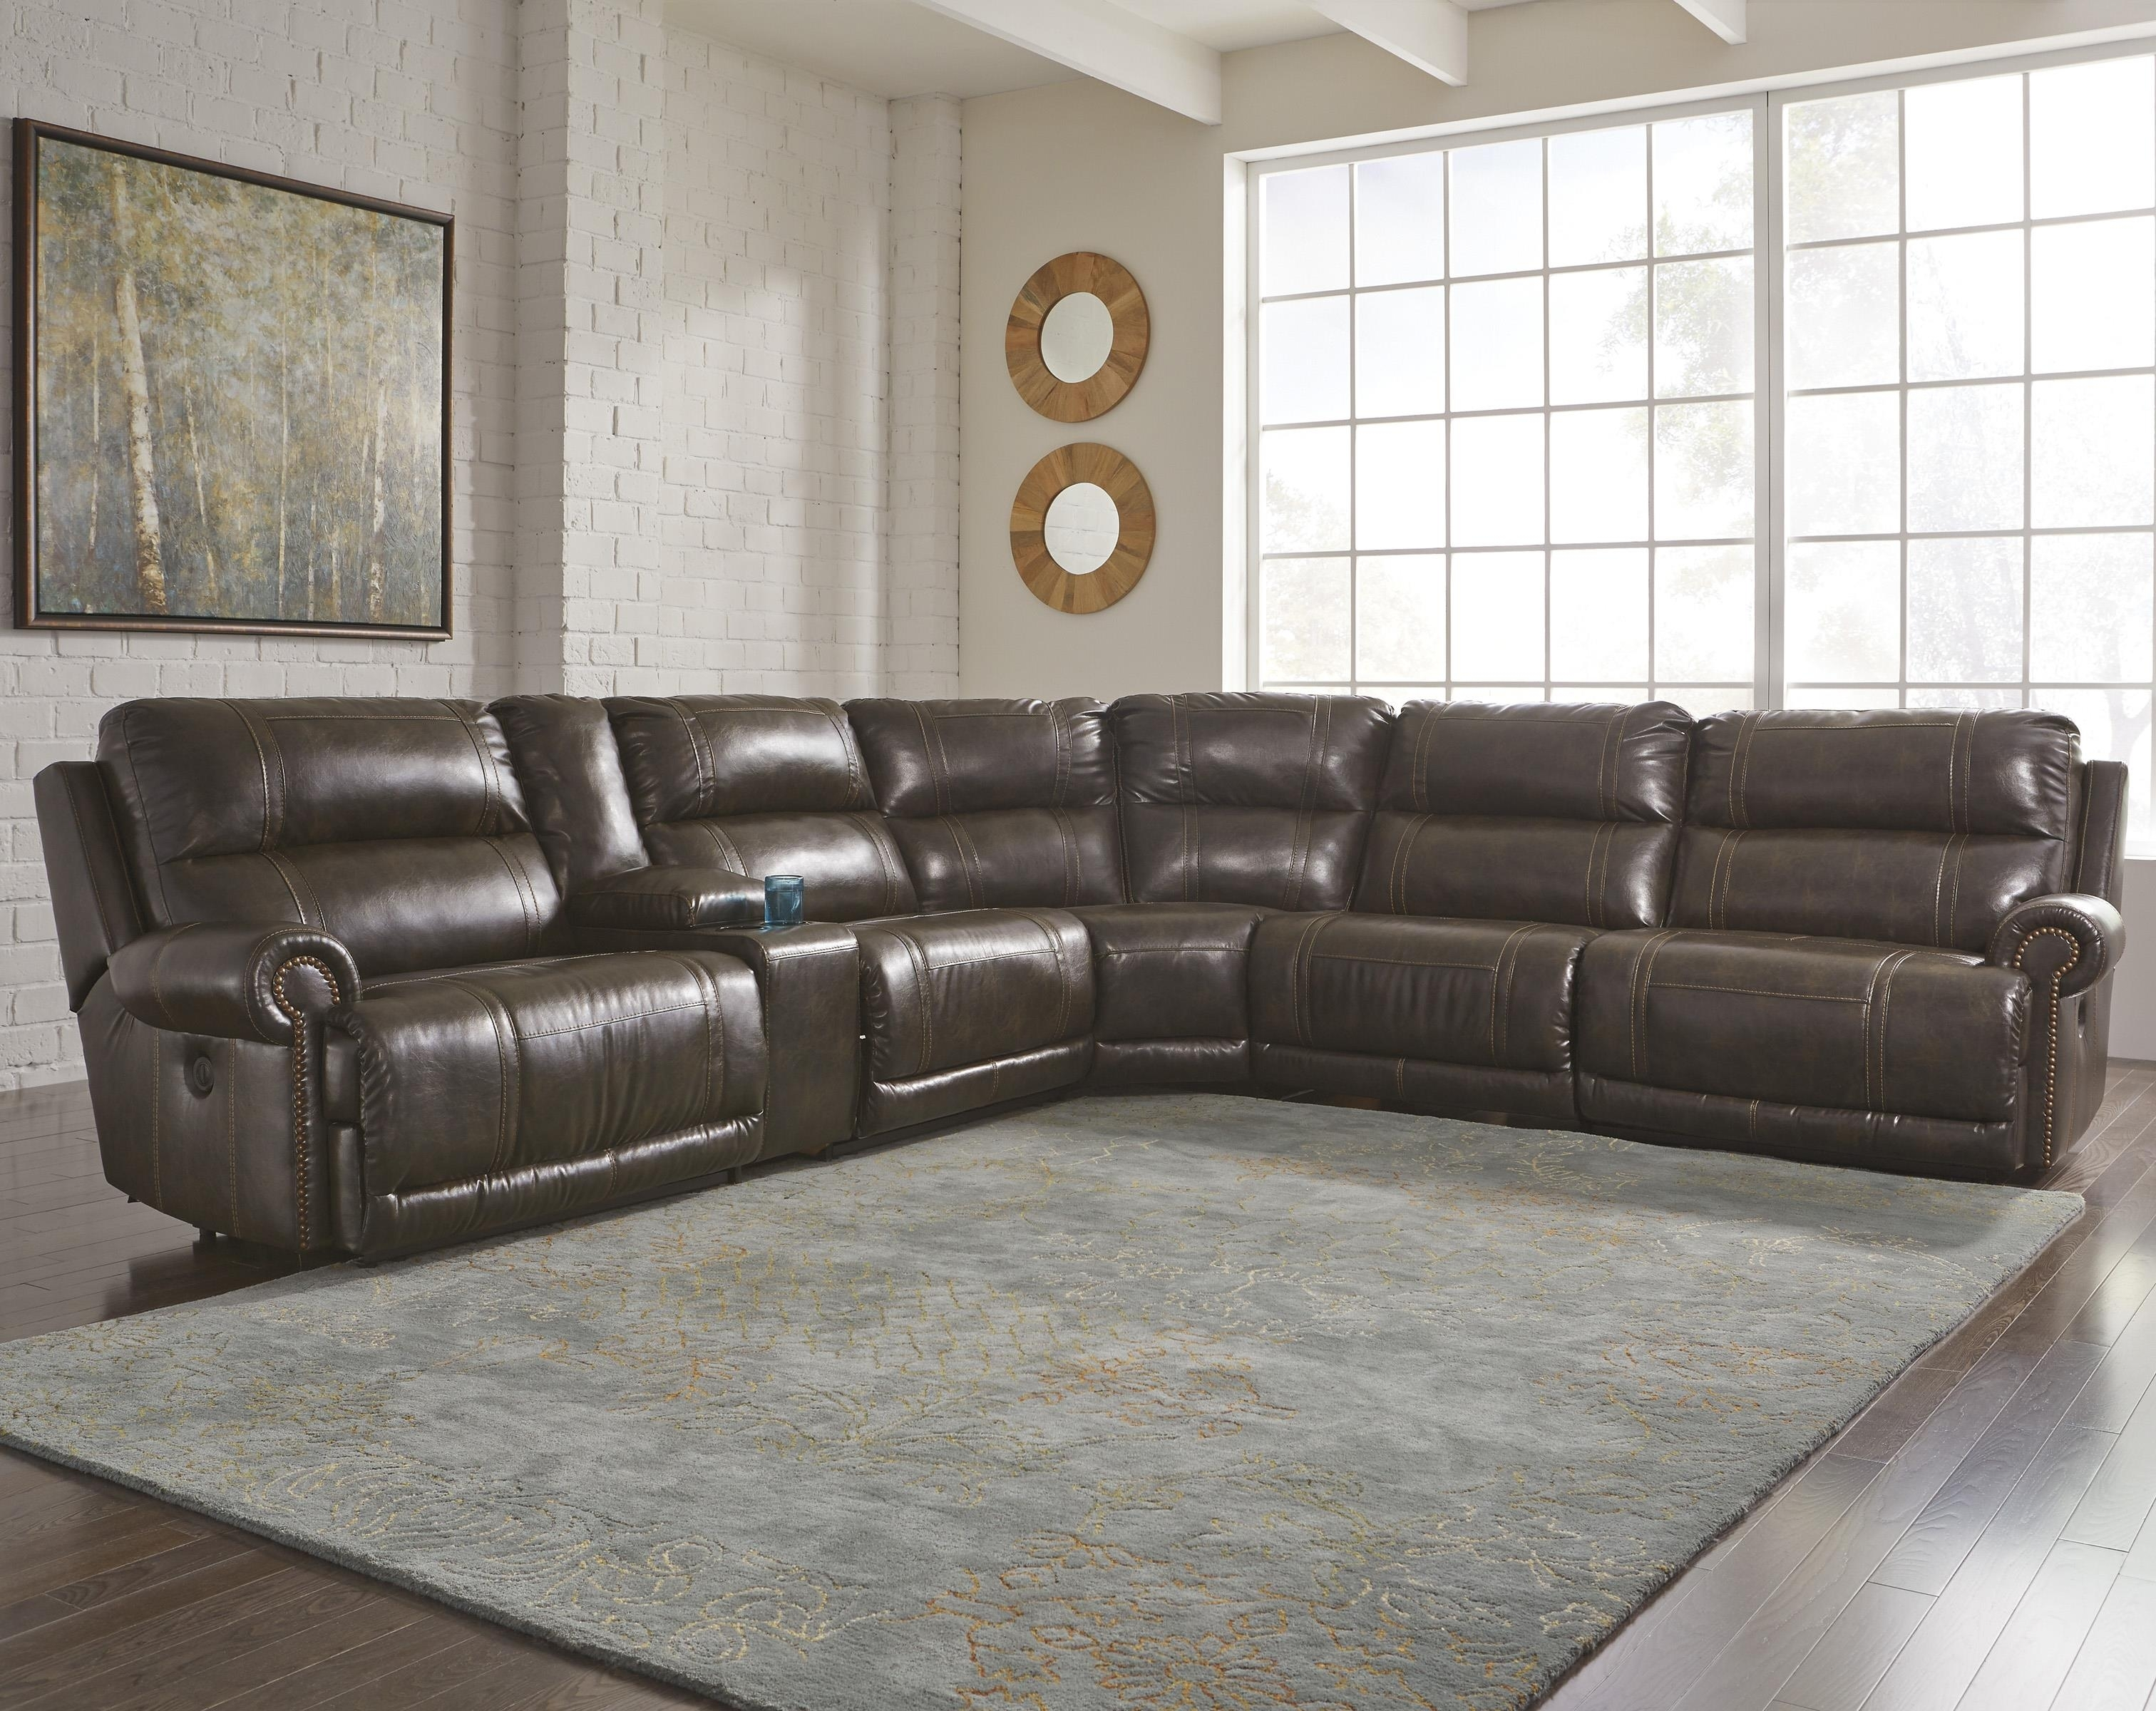 Sectional Sofa With Recliner Sectionals Recliners And Sleepers pertaining to Glamour Ii 3 Piece Sectionals (Image 22 of 30)